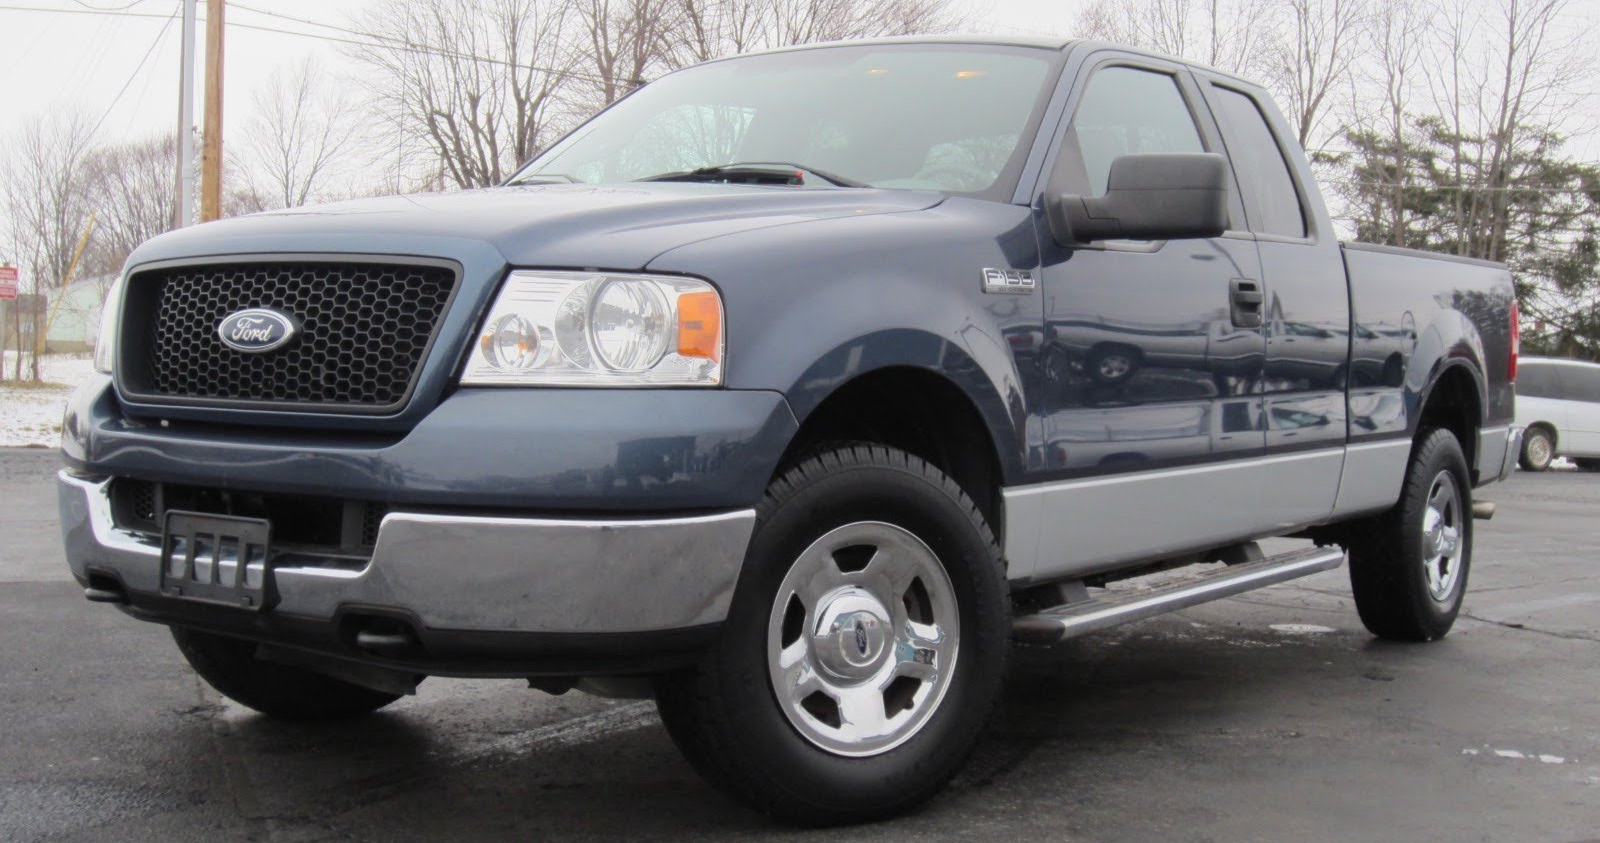 Ford F-150 11th-Gen